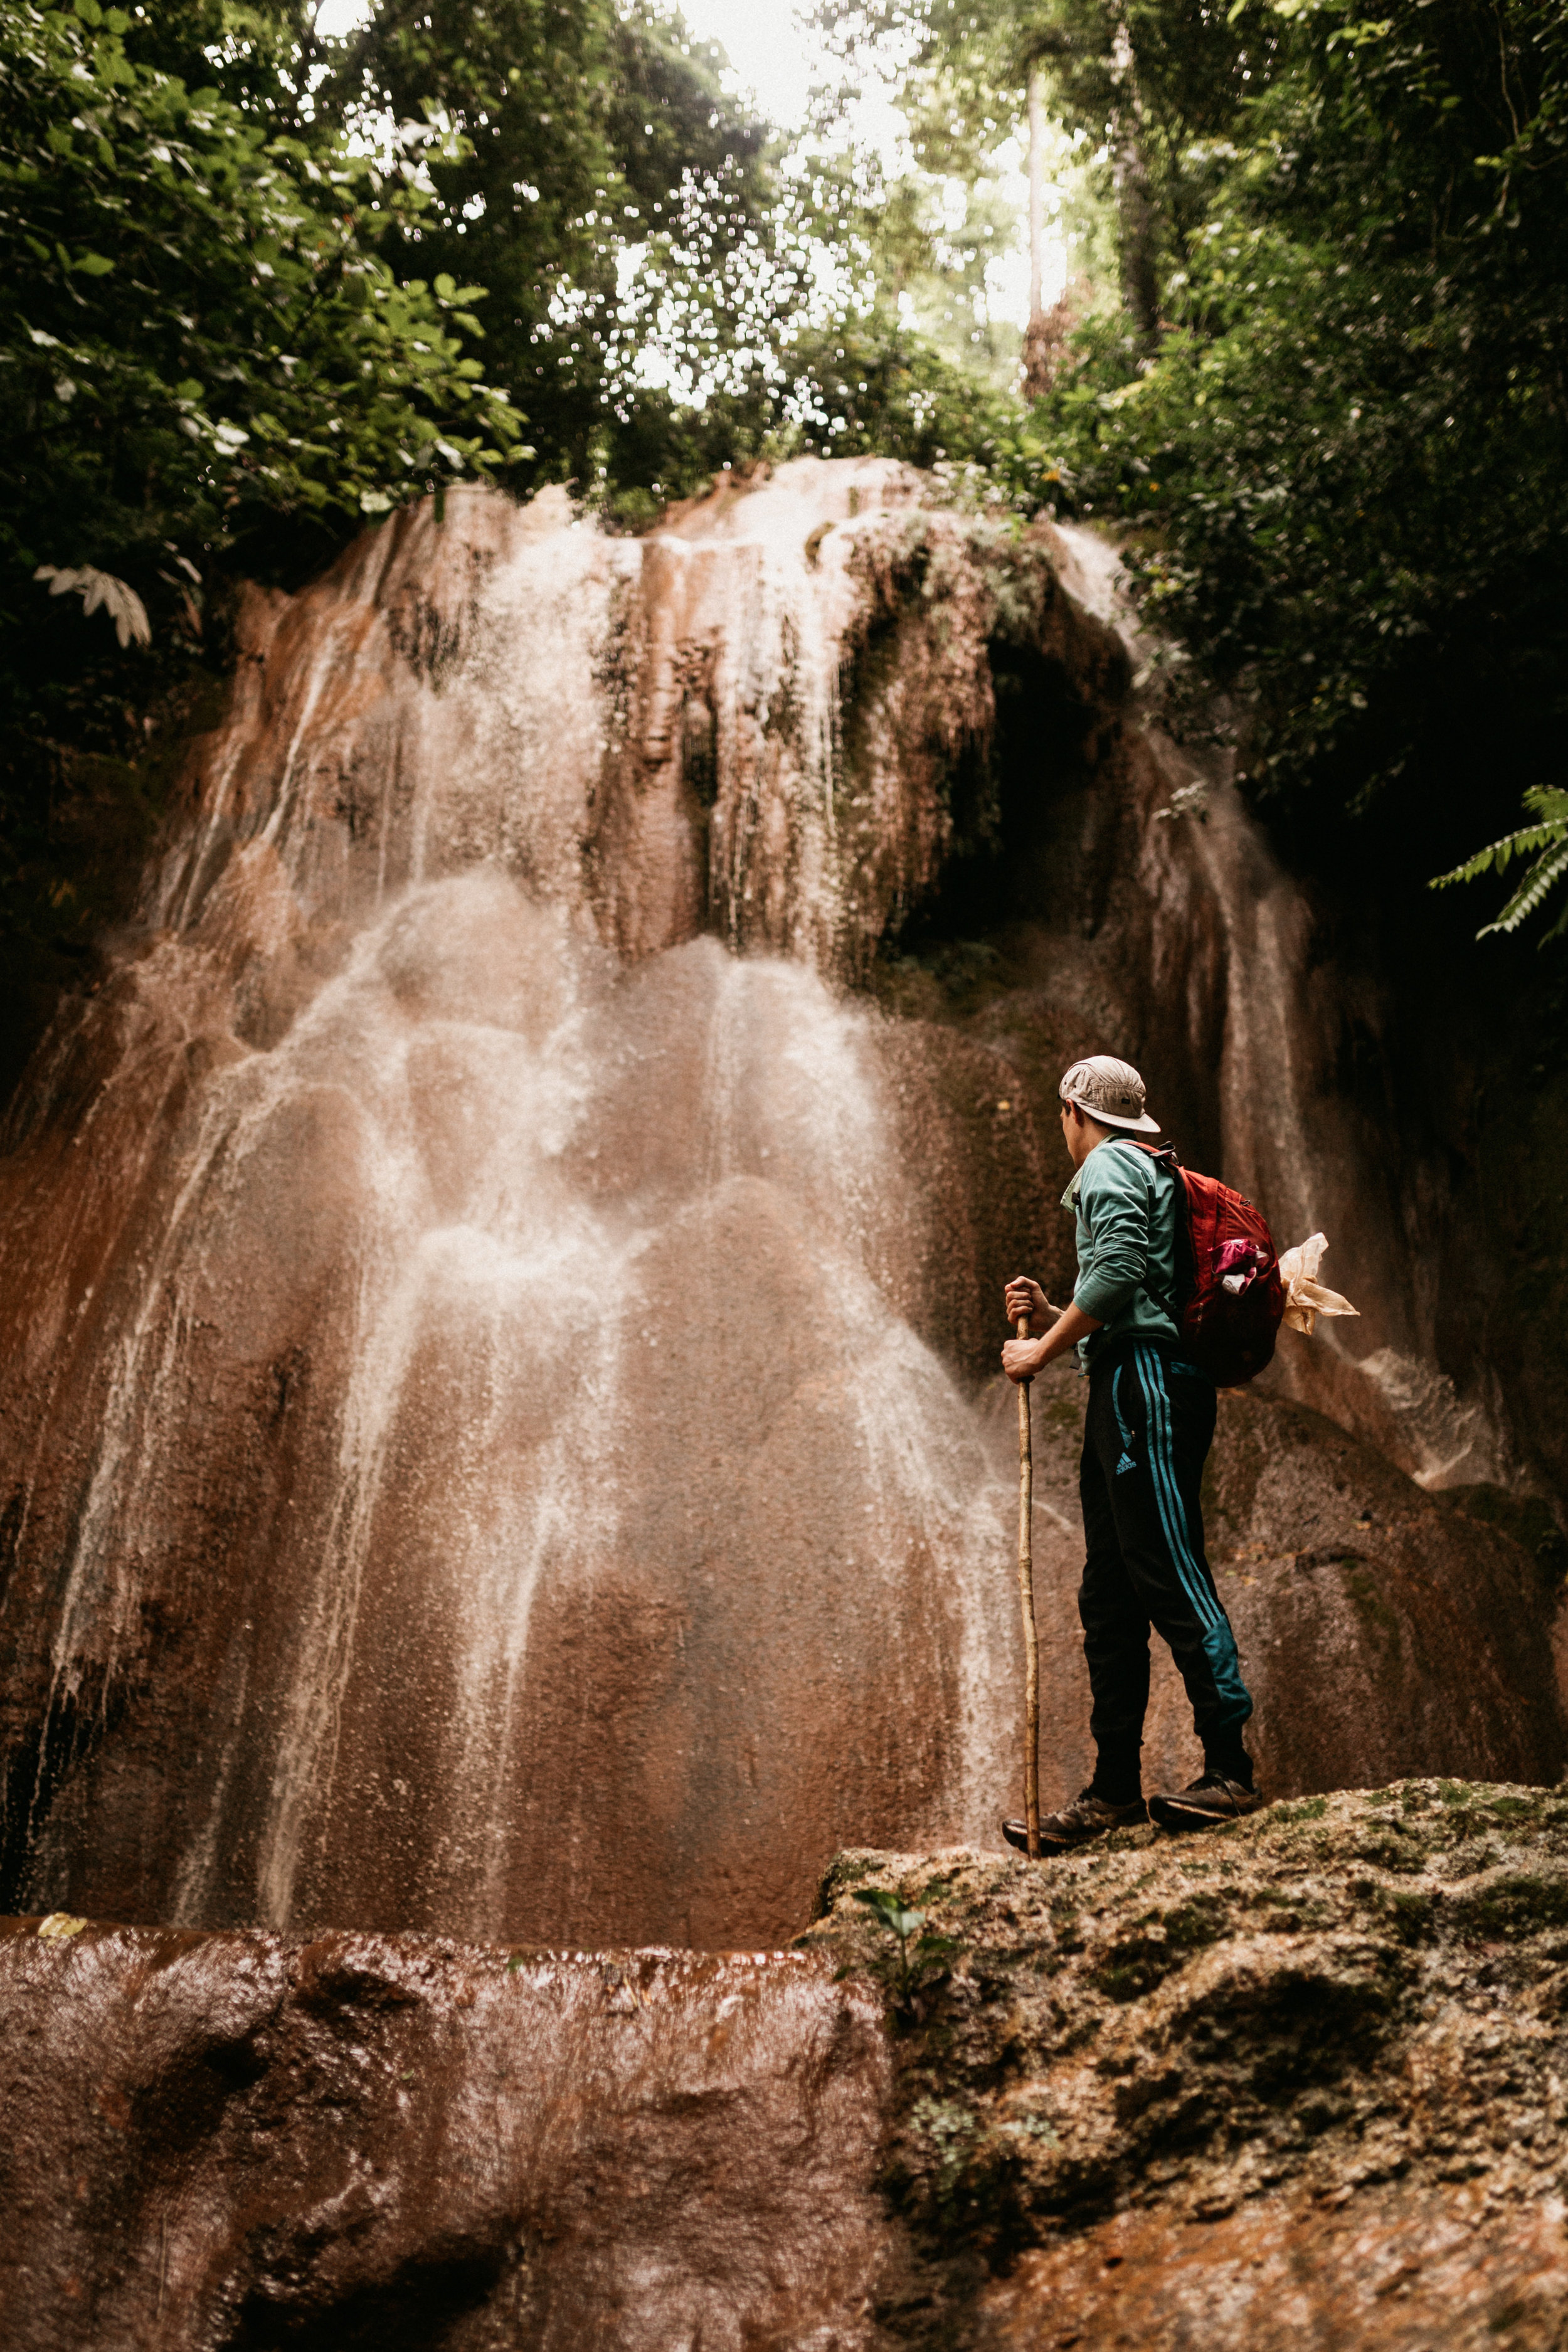 Closing out the experience by visiting a few of the stunning waterfalls of Salawin National Park. Usually the water is seen as a translucent blue/green, but on our visit due to the storm, the water appeared a deep orange/brown, almost like a river Thai iced-tea!